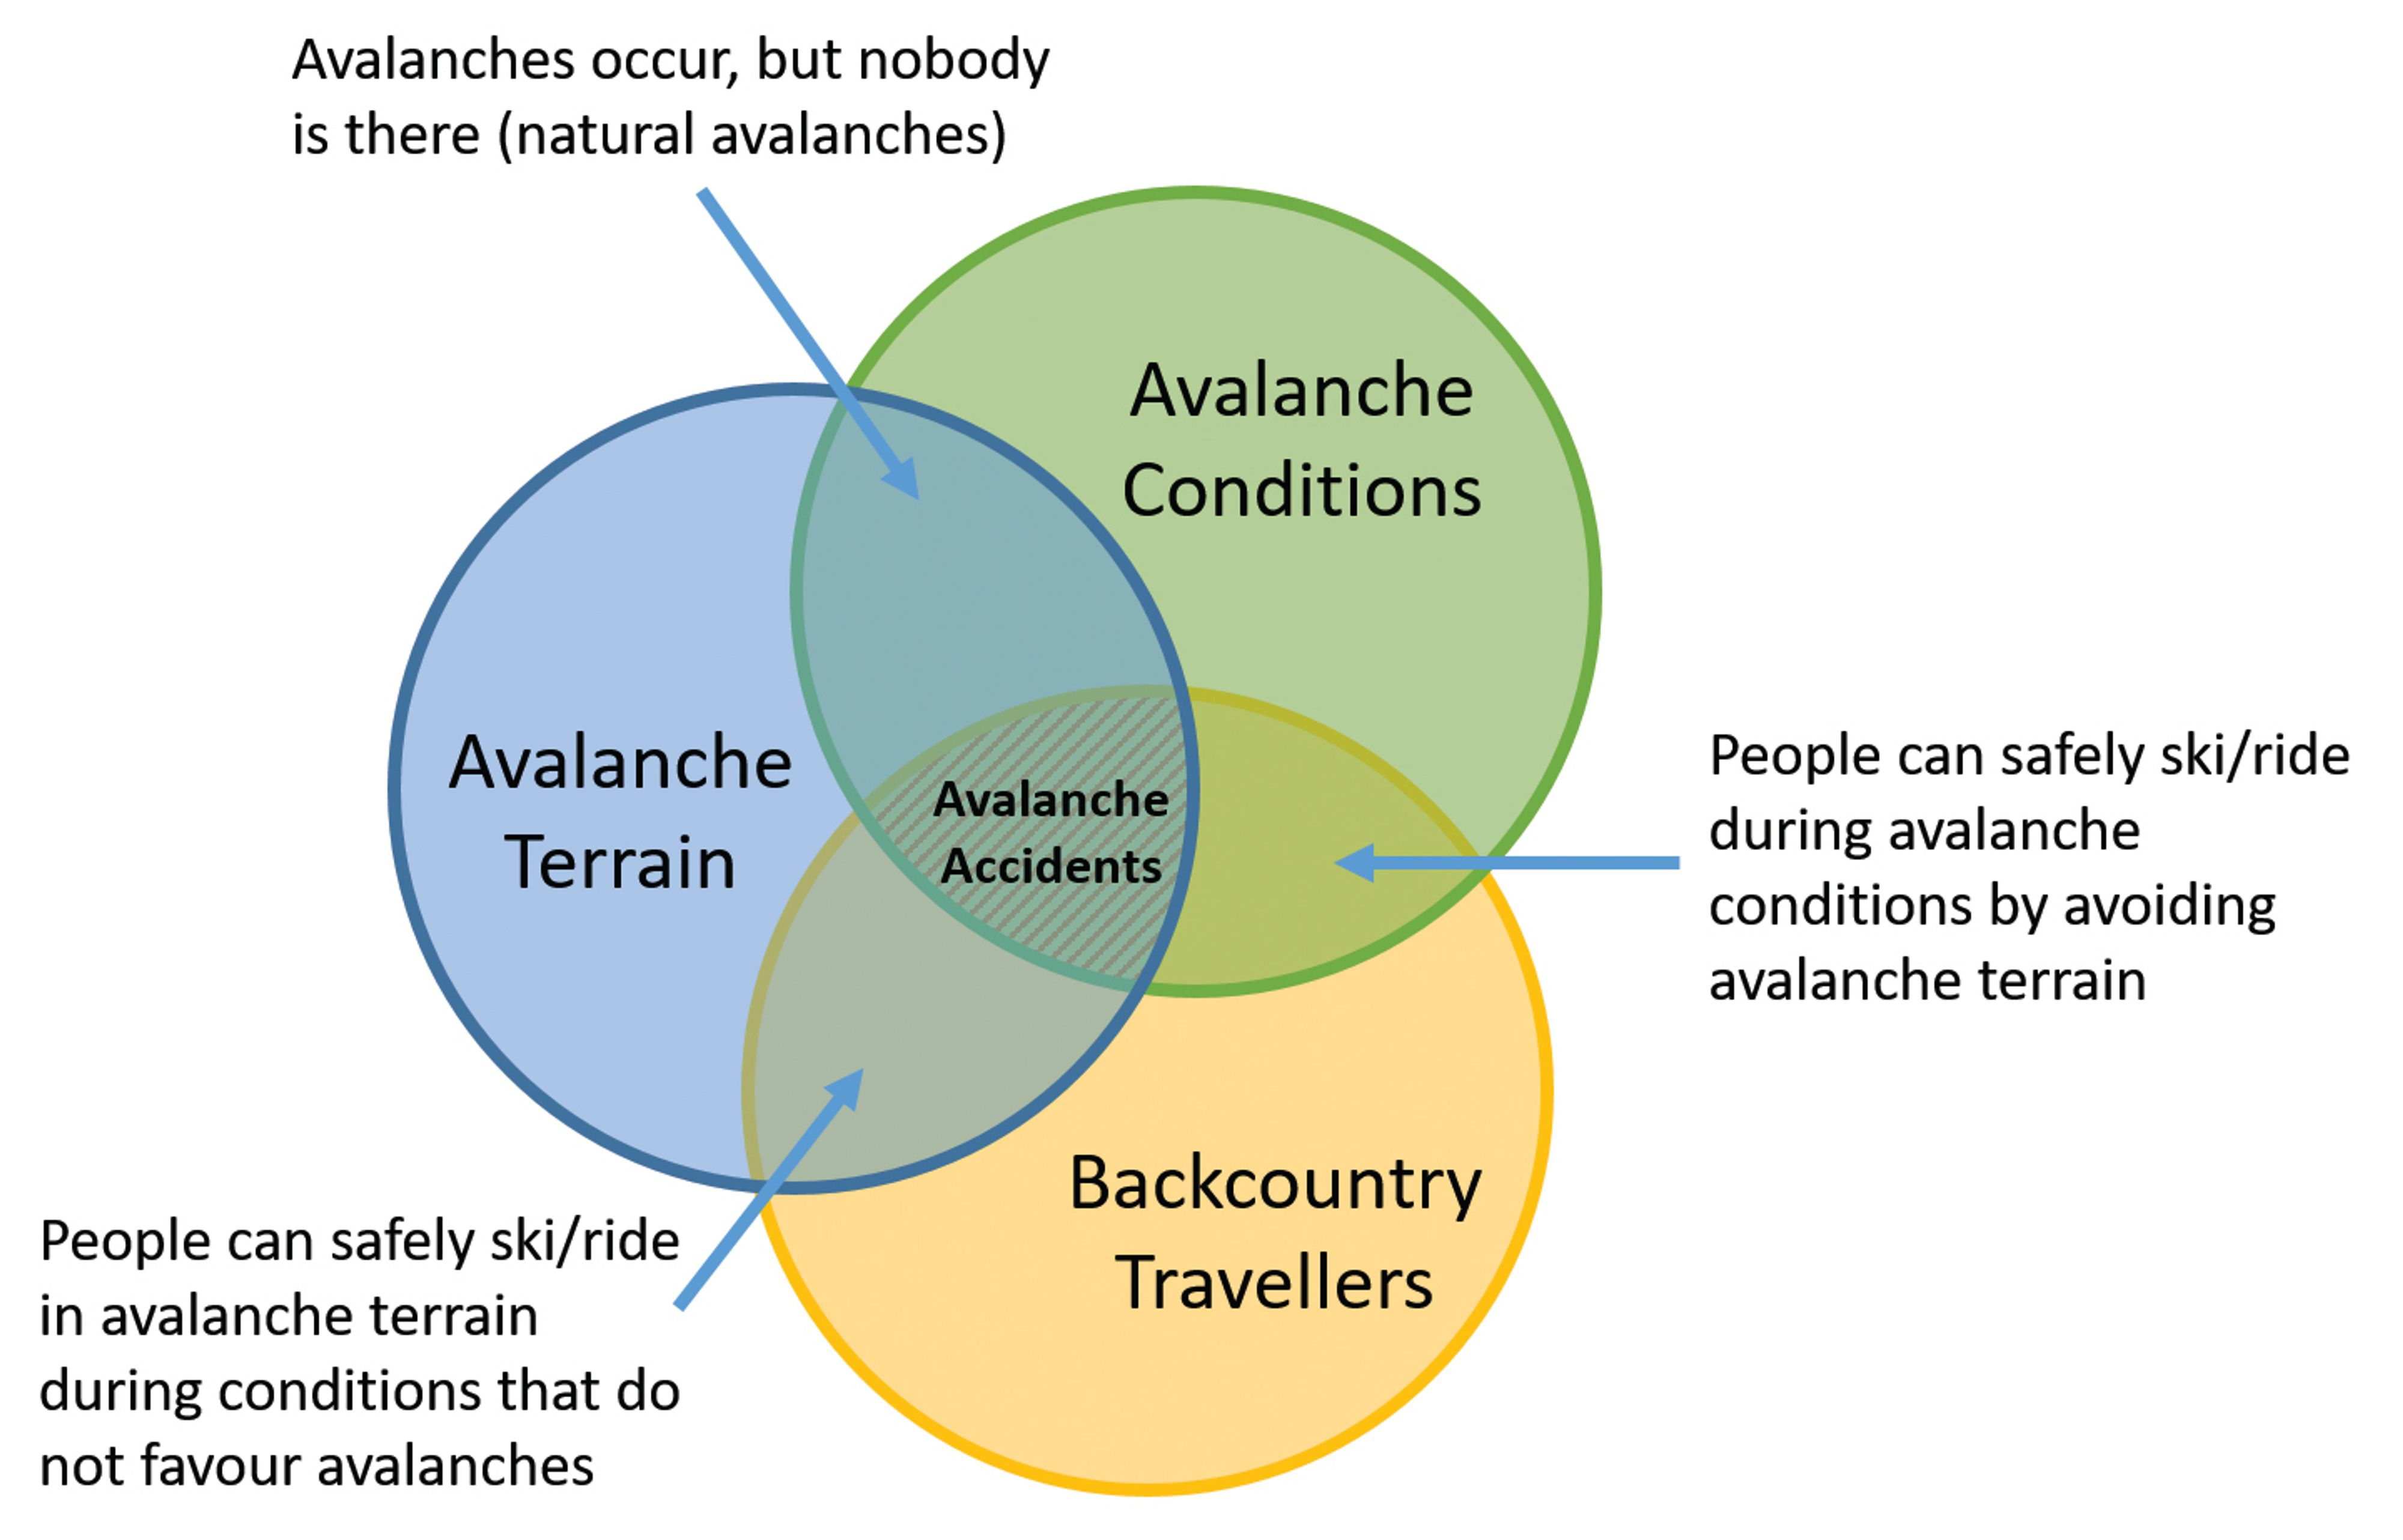 Avalanches accidents occur when backcountry travellers are exposed to avalanche terrain during conditions that can produce avalanches.